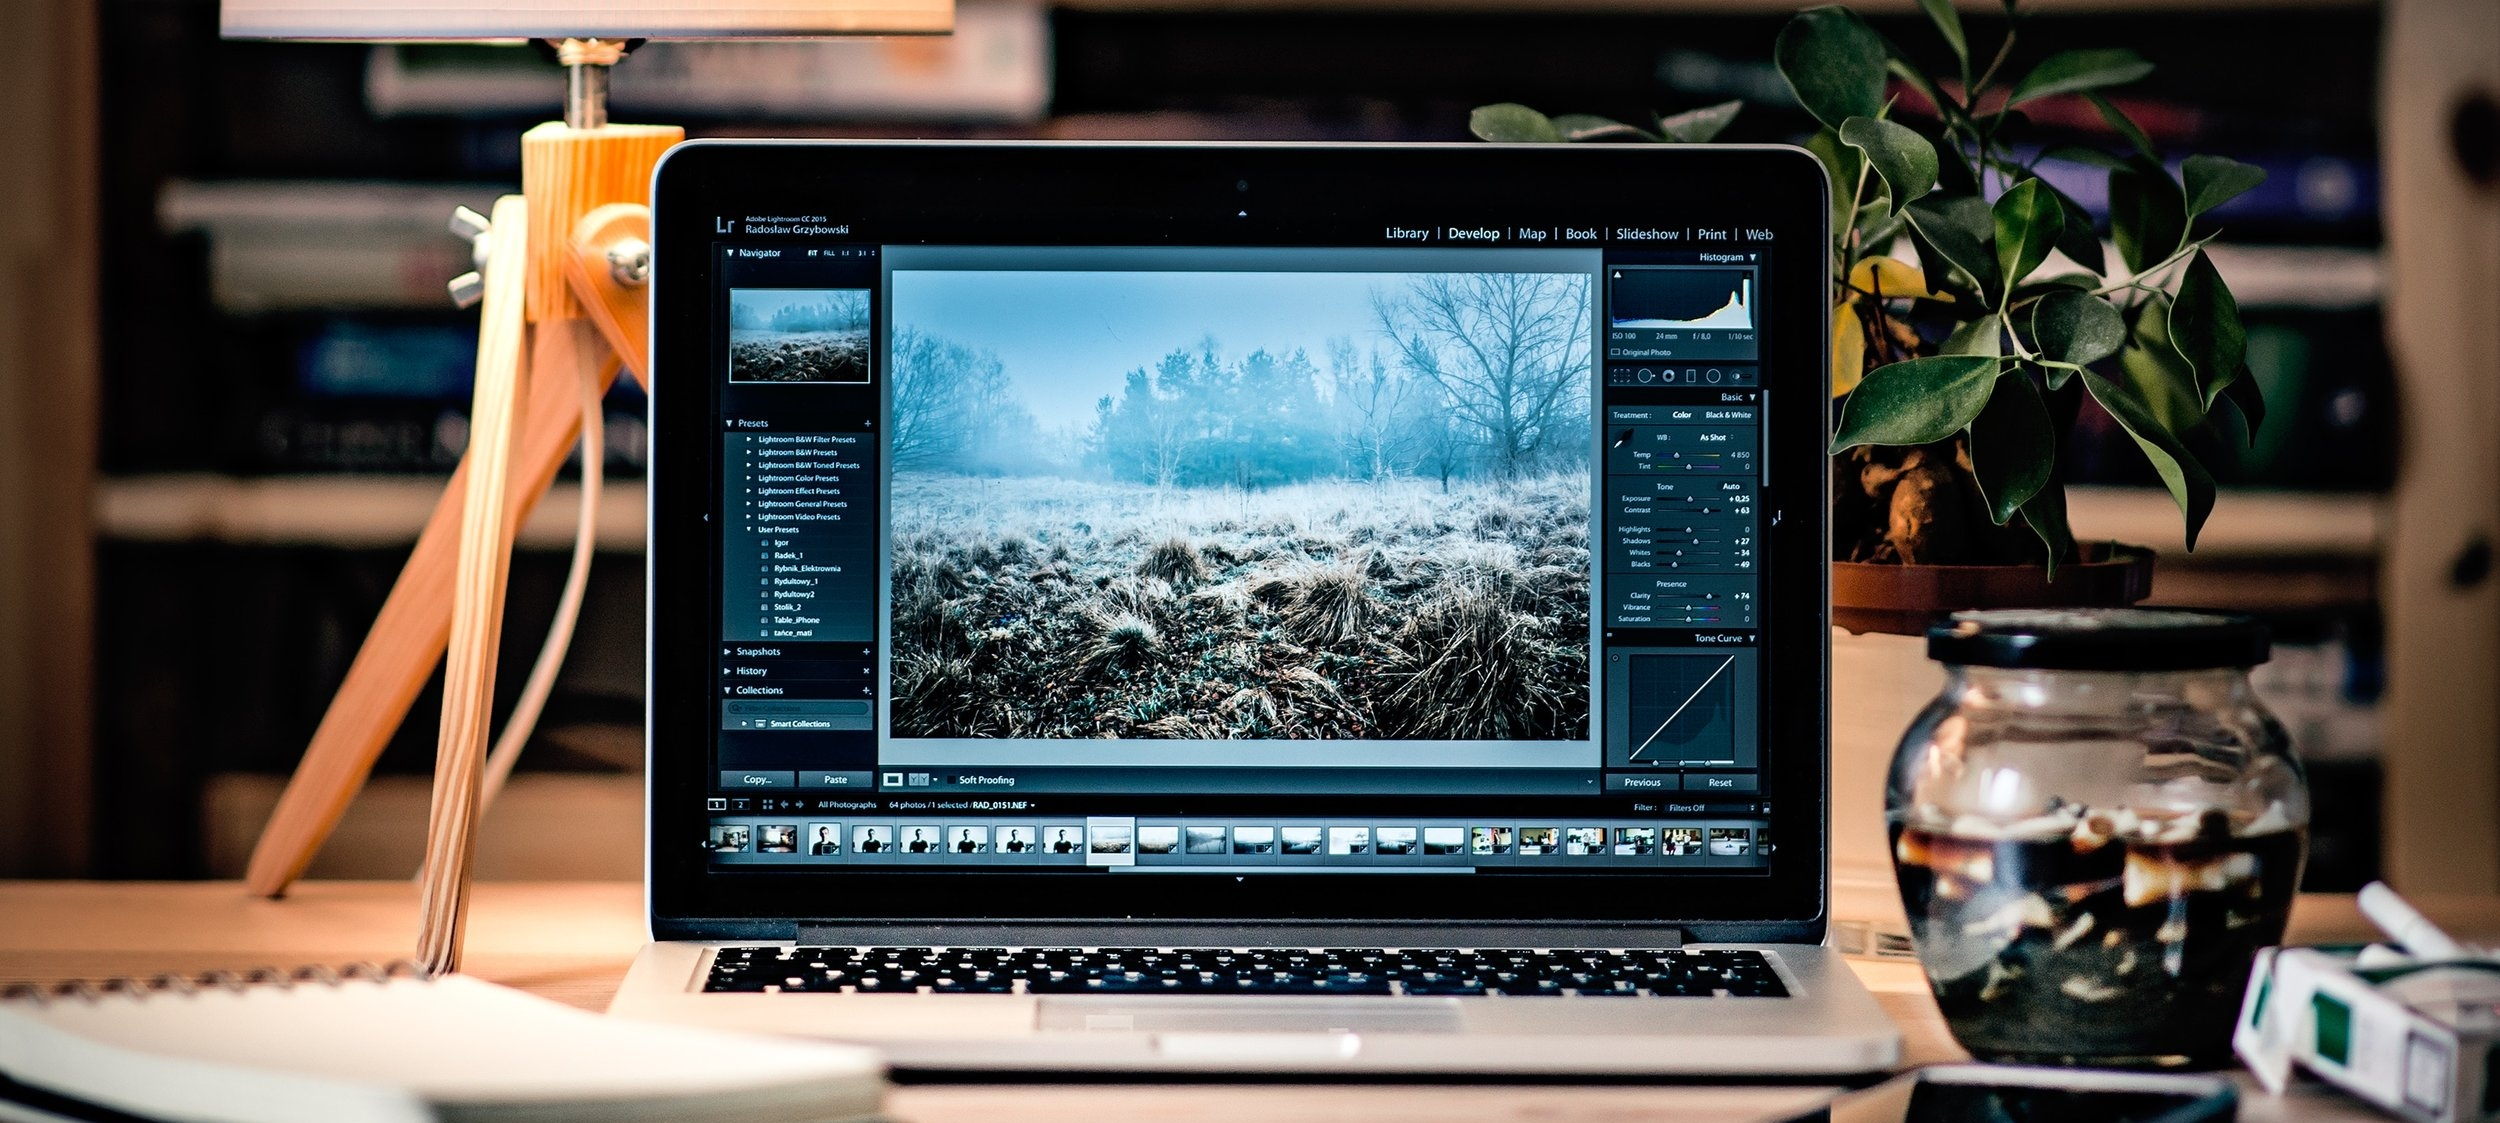 PHOTO EDITING BATTLE - Use your editing powers to make something new out of something old.